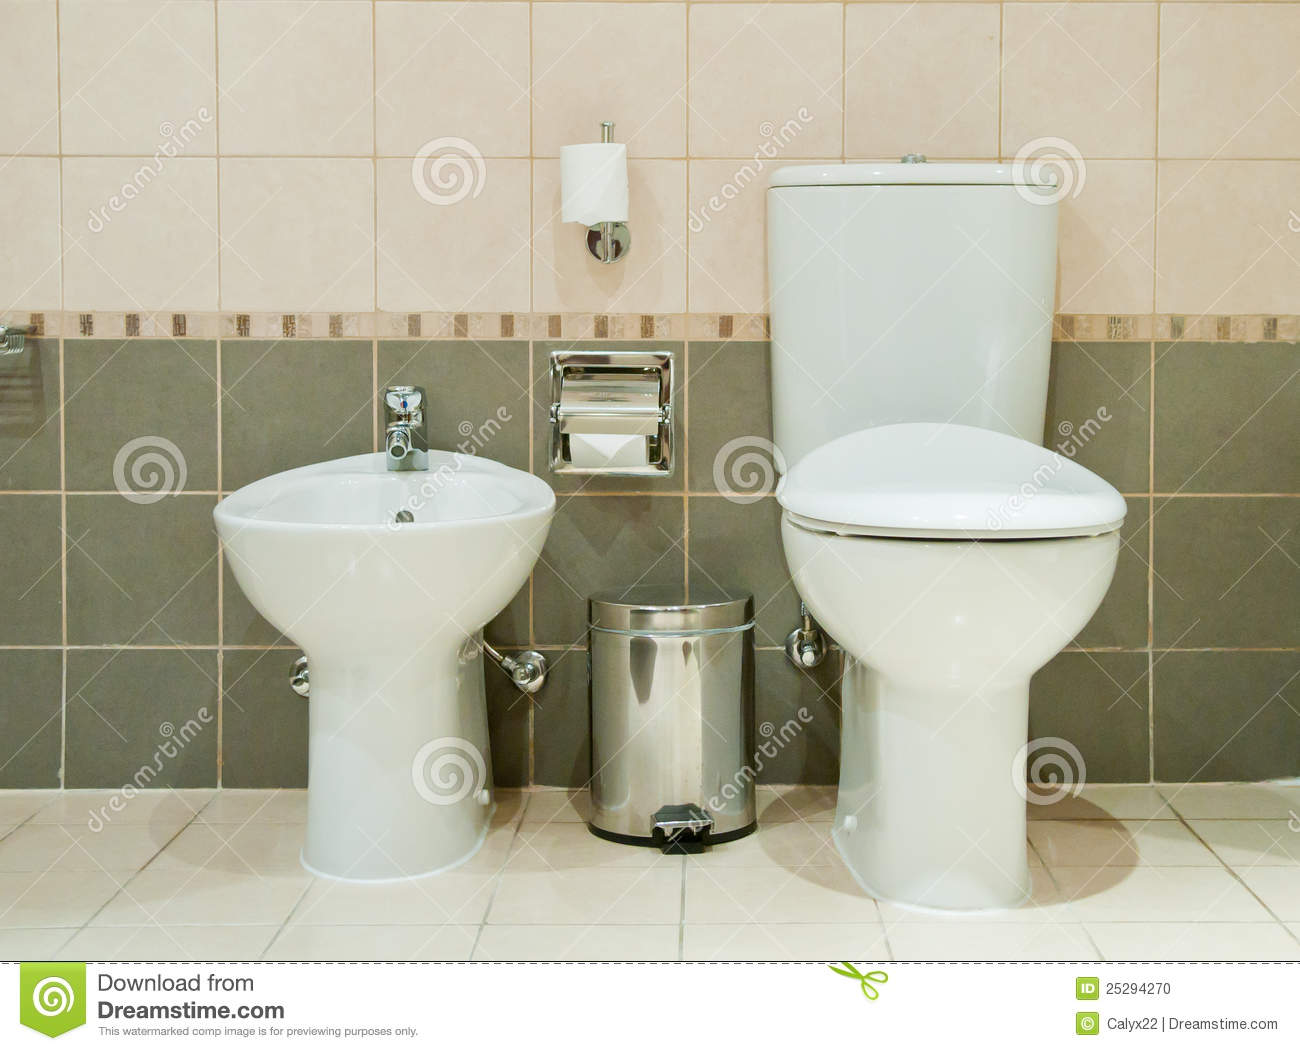 Modern bathroom with toilet and bidet stock photo image for Salle de bain moderne 7m2